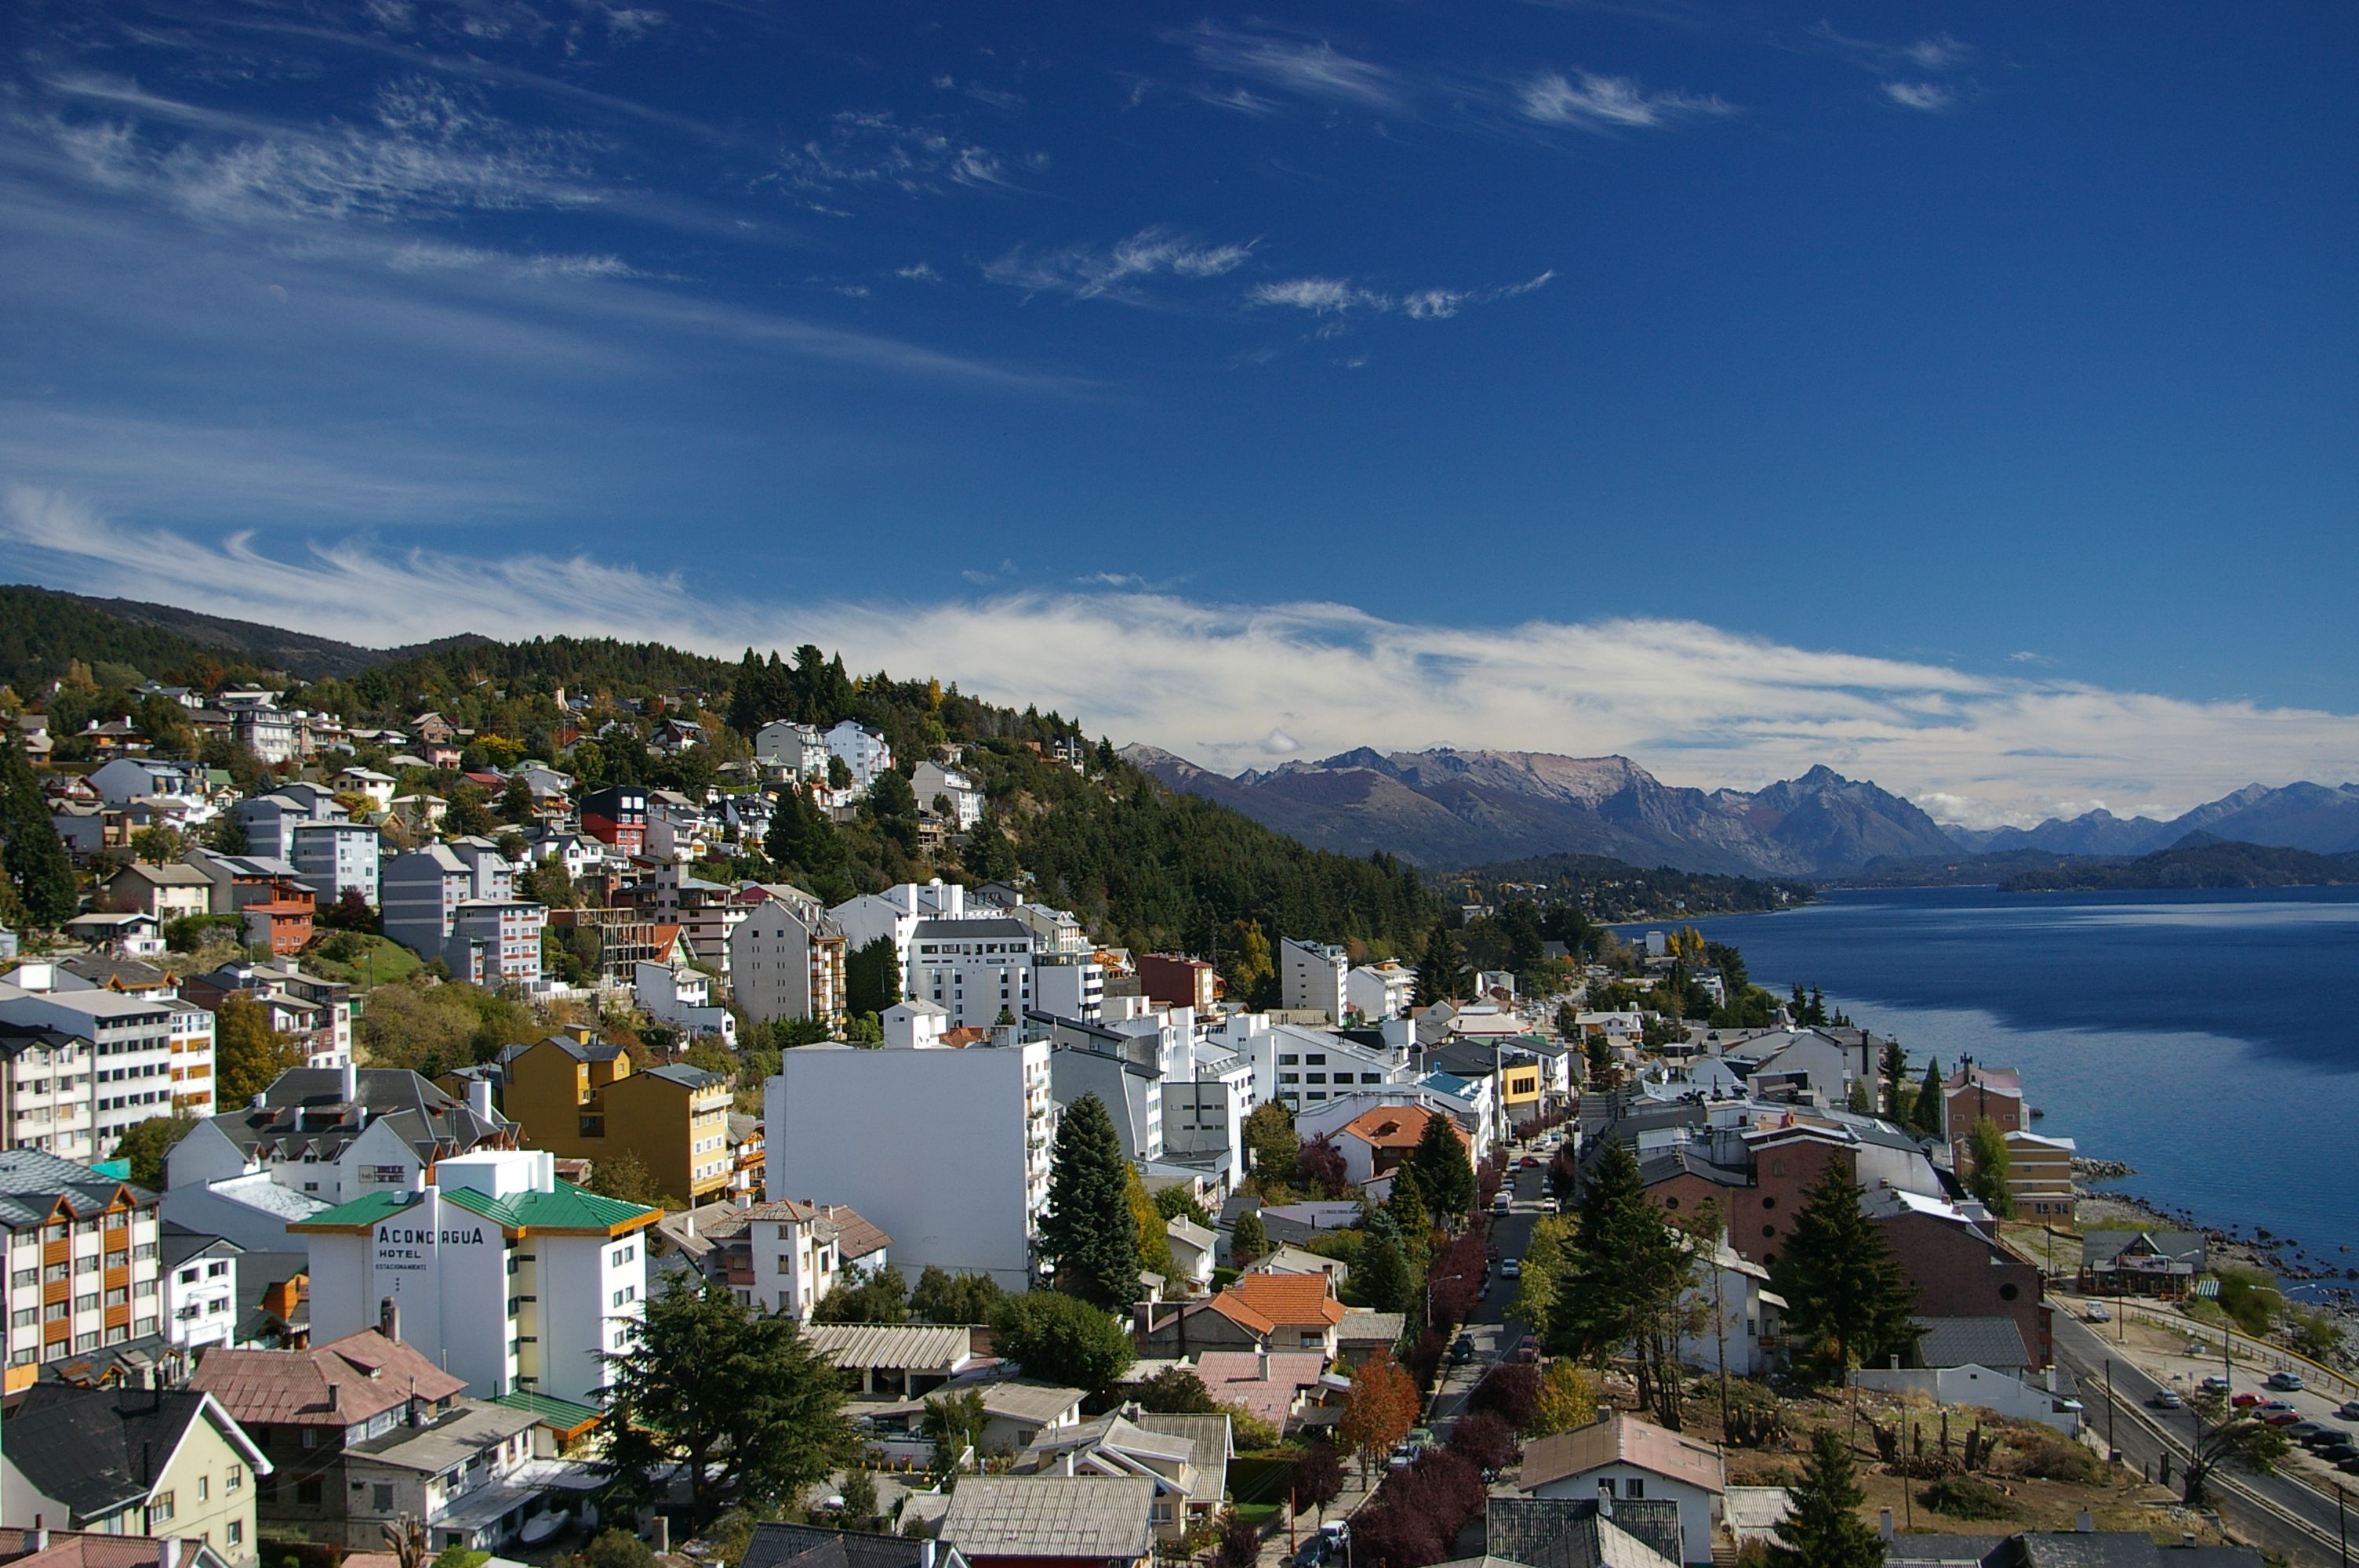 View overlooking the city of Bariloche from above